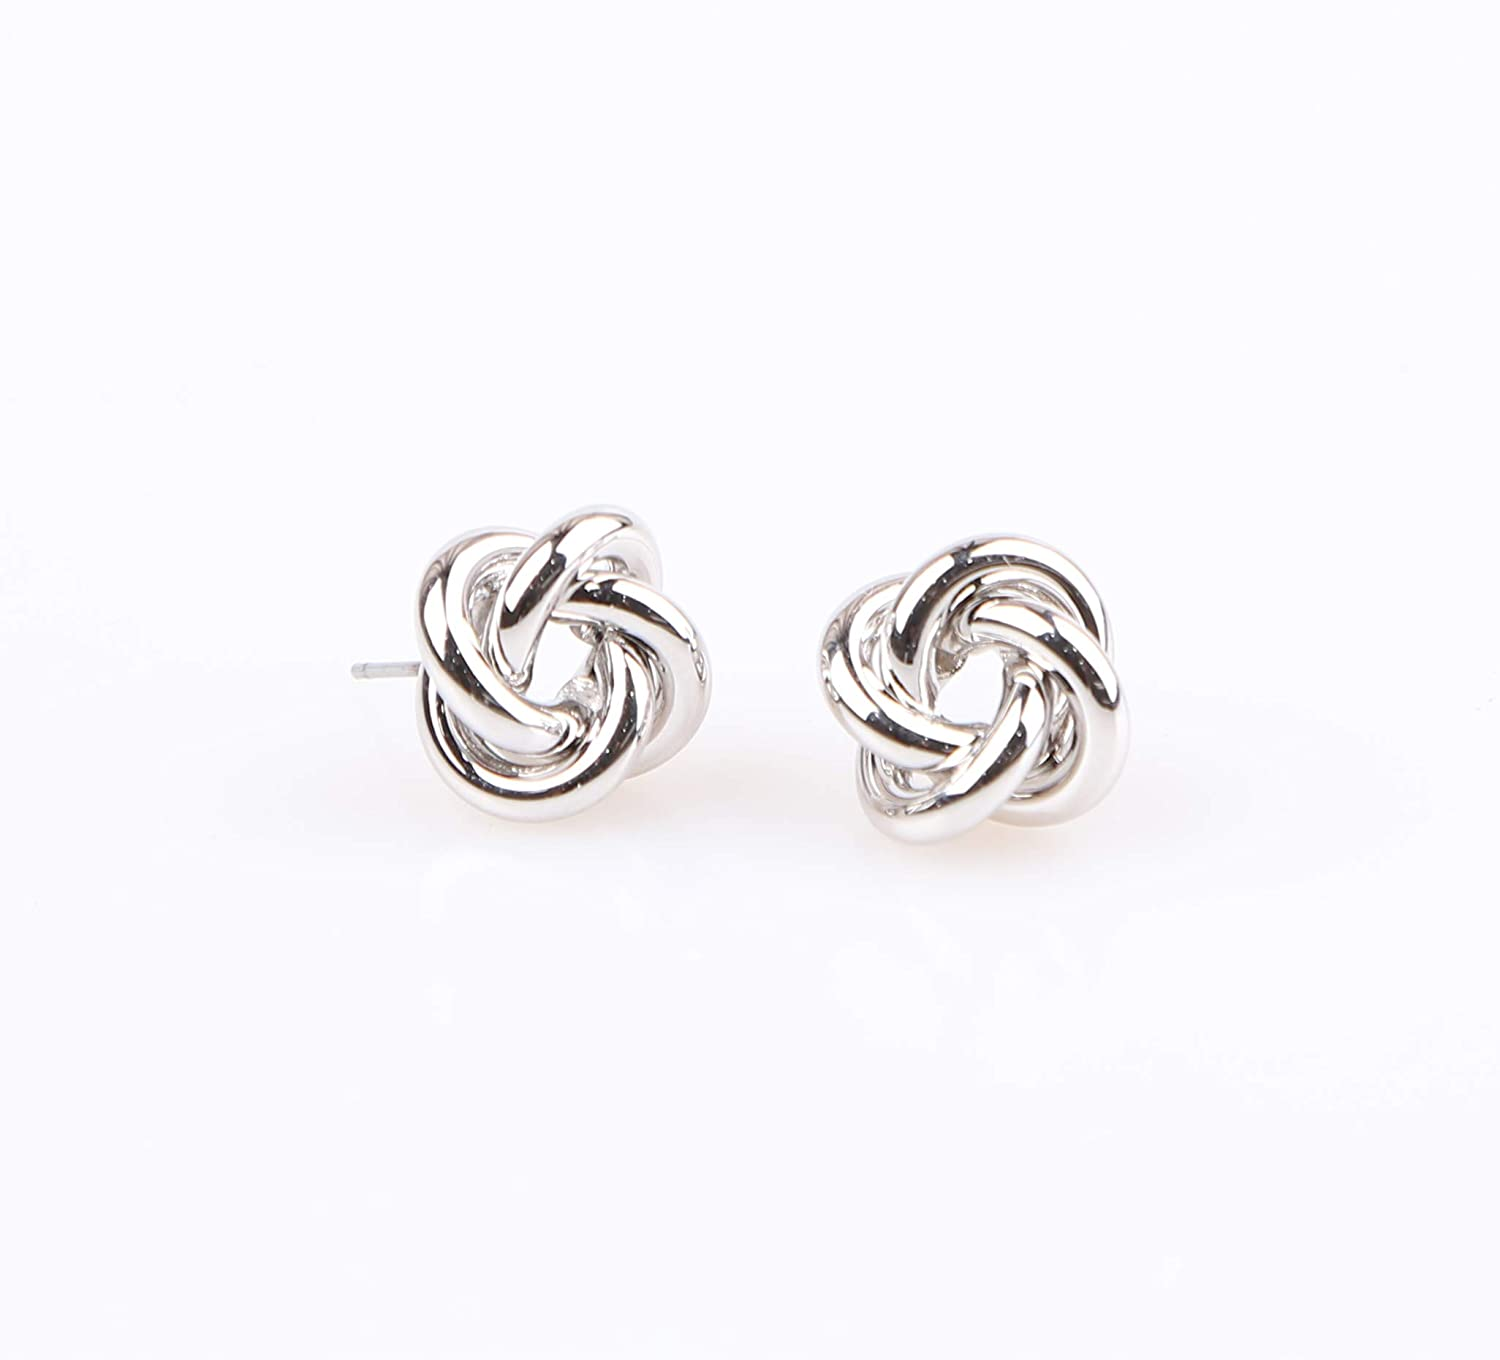 /'Flower 1/' Nickel Free Post Special Occasion /& Daily Wear Accessories Comes in a Gift Box//K-POP Korea Style Heavens Hailey Urban Style Metallic Stud Earrings